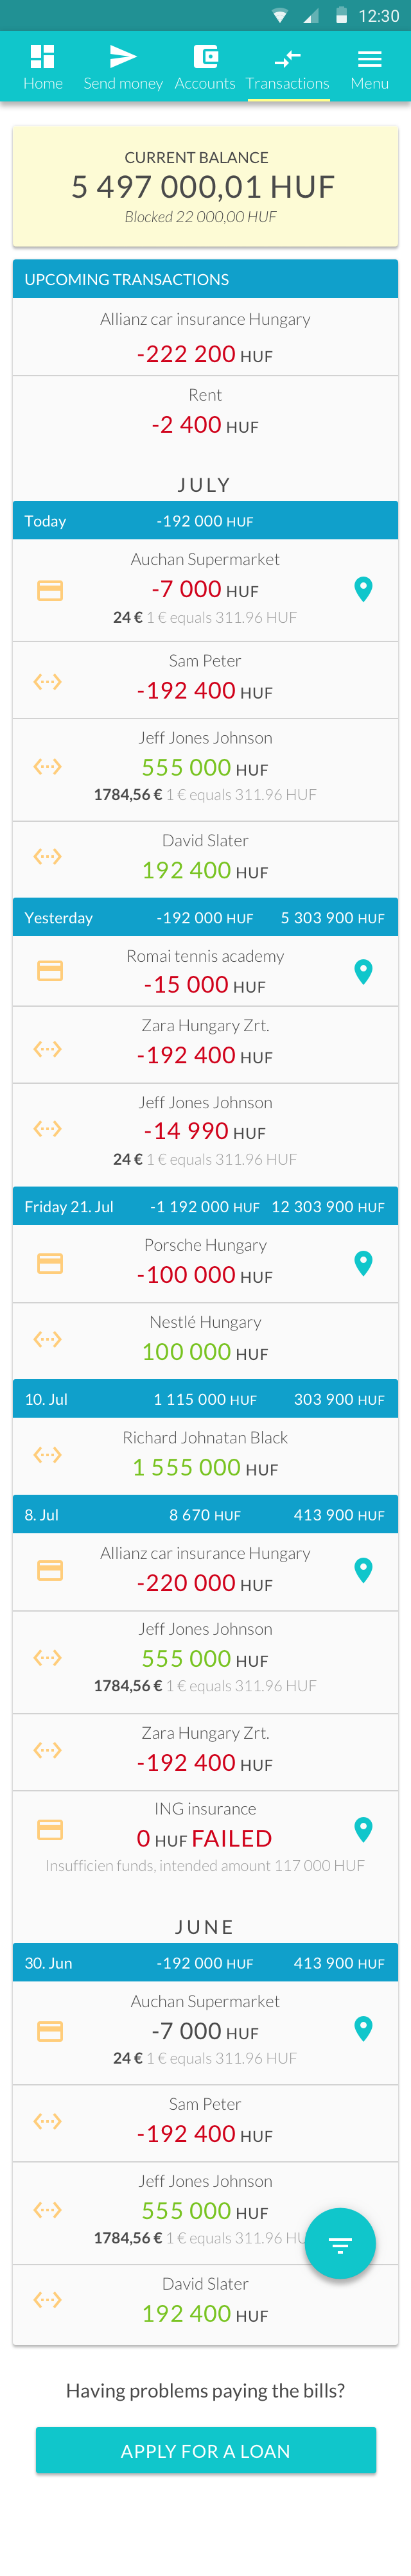 Transaction history - Android